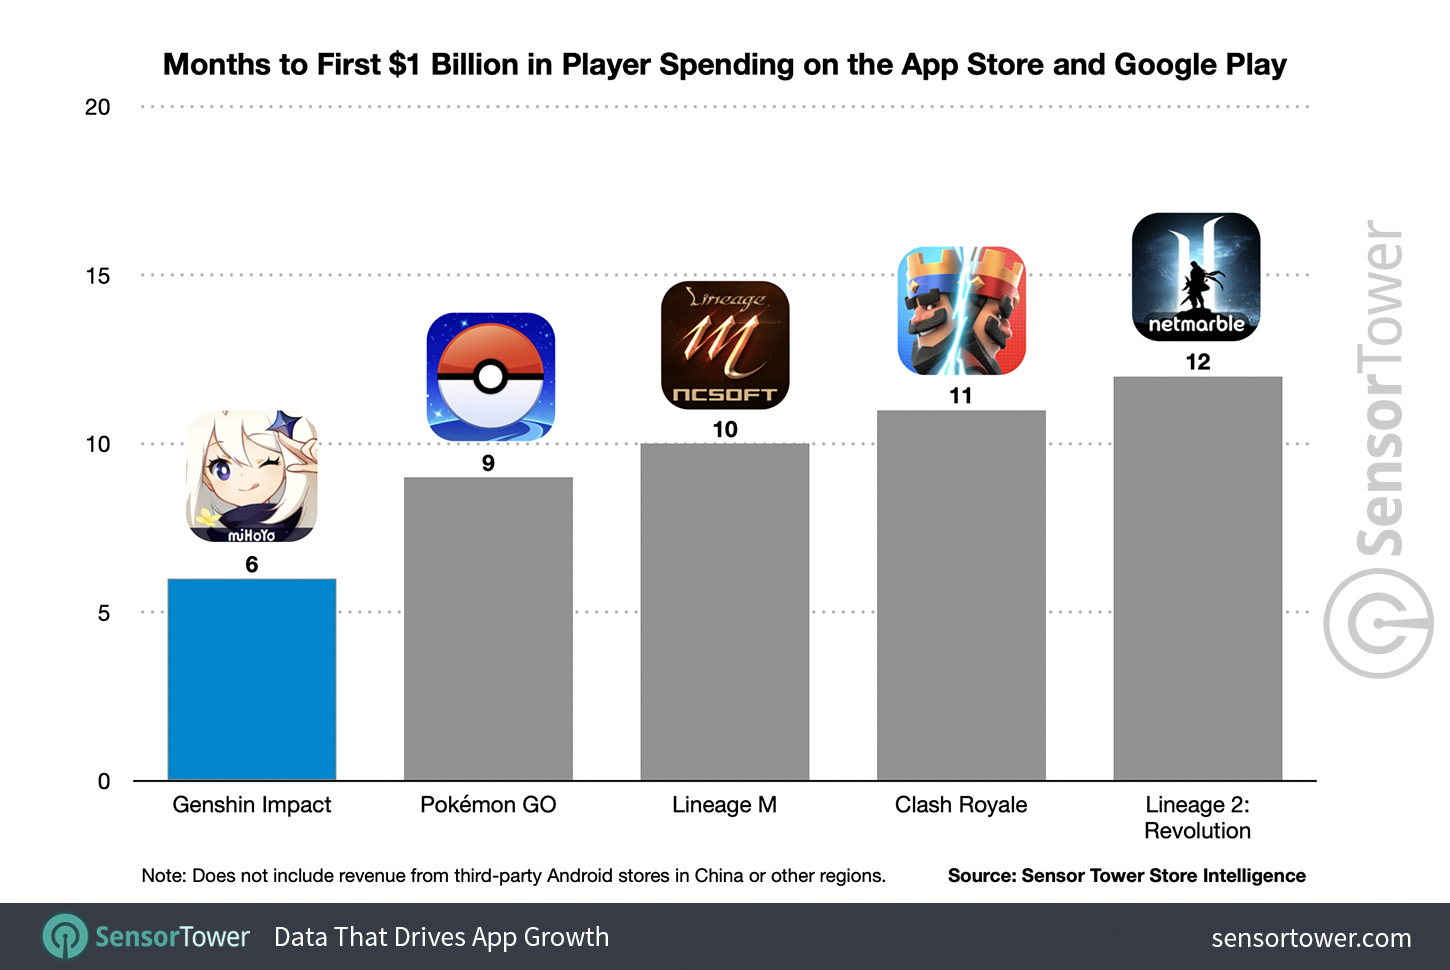 Months to first $1 Billion on the App Store and Google Play